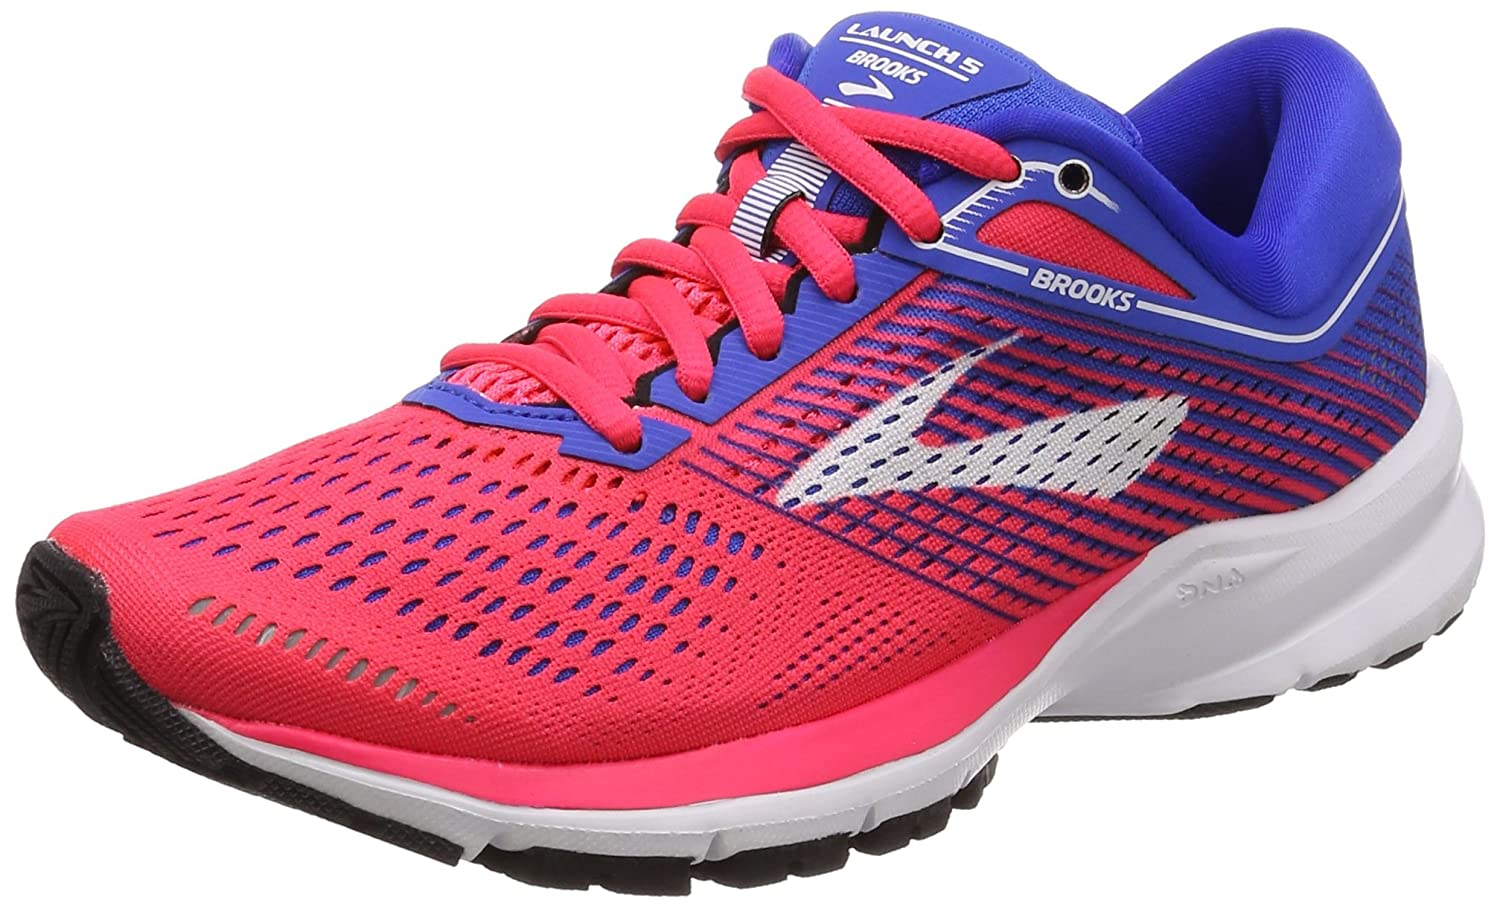 Brooks Womens Launch 5 B071VKHTZS 9 B(M) US|Pink/Blue/White